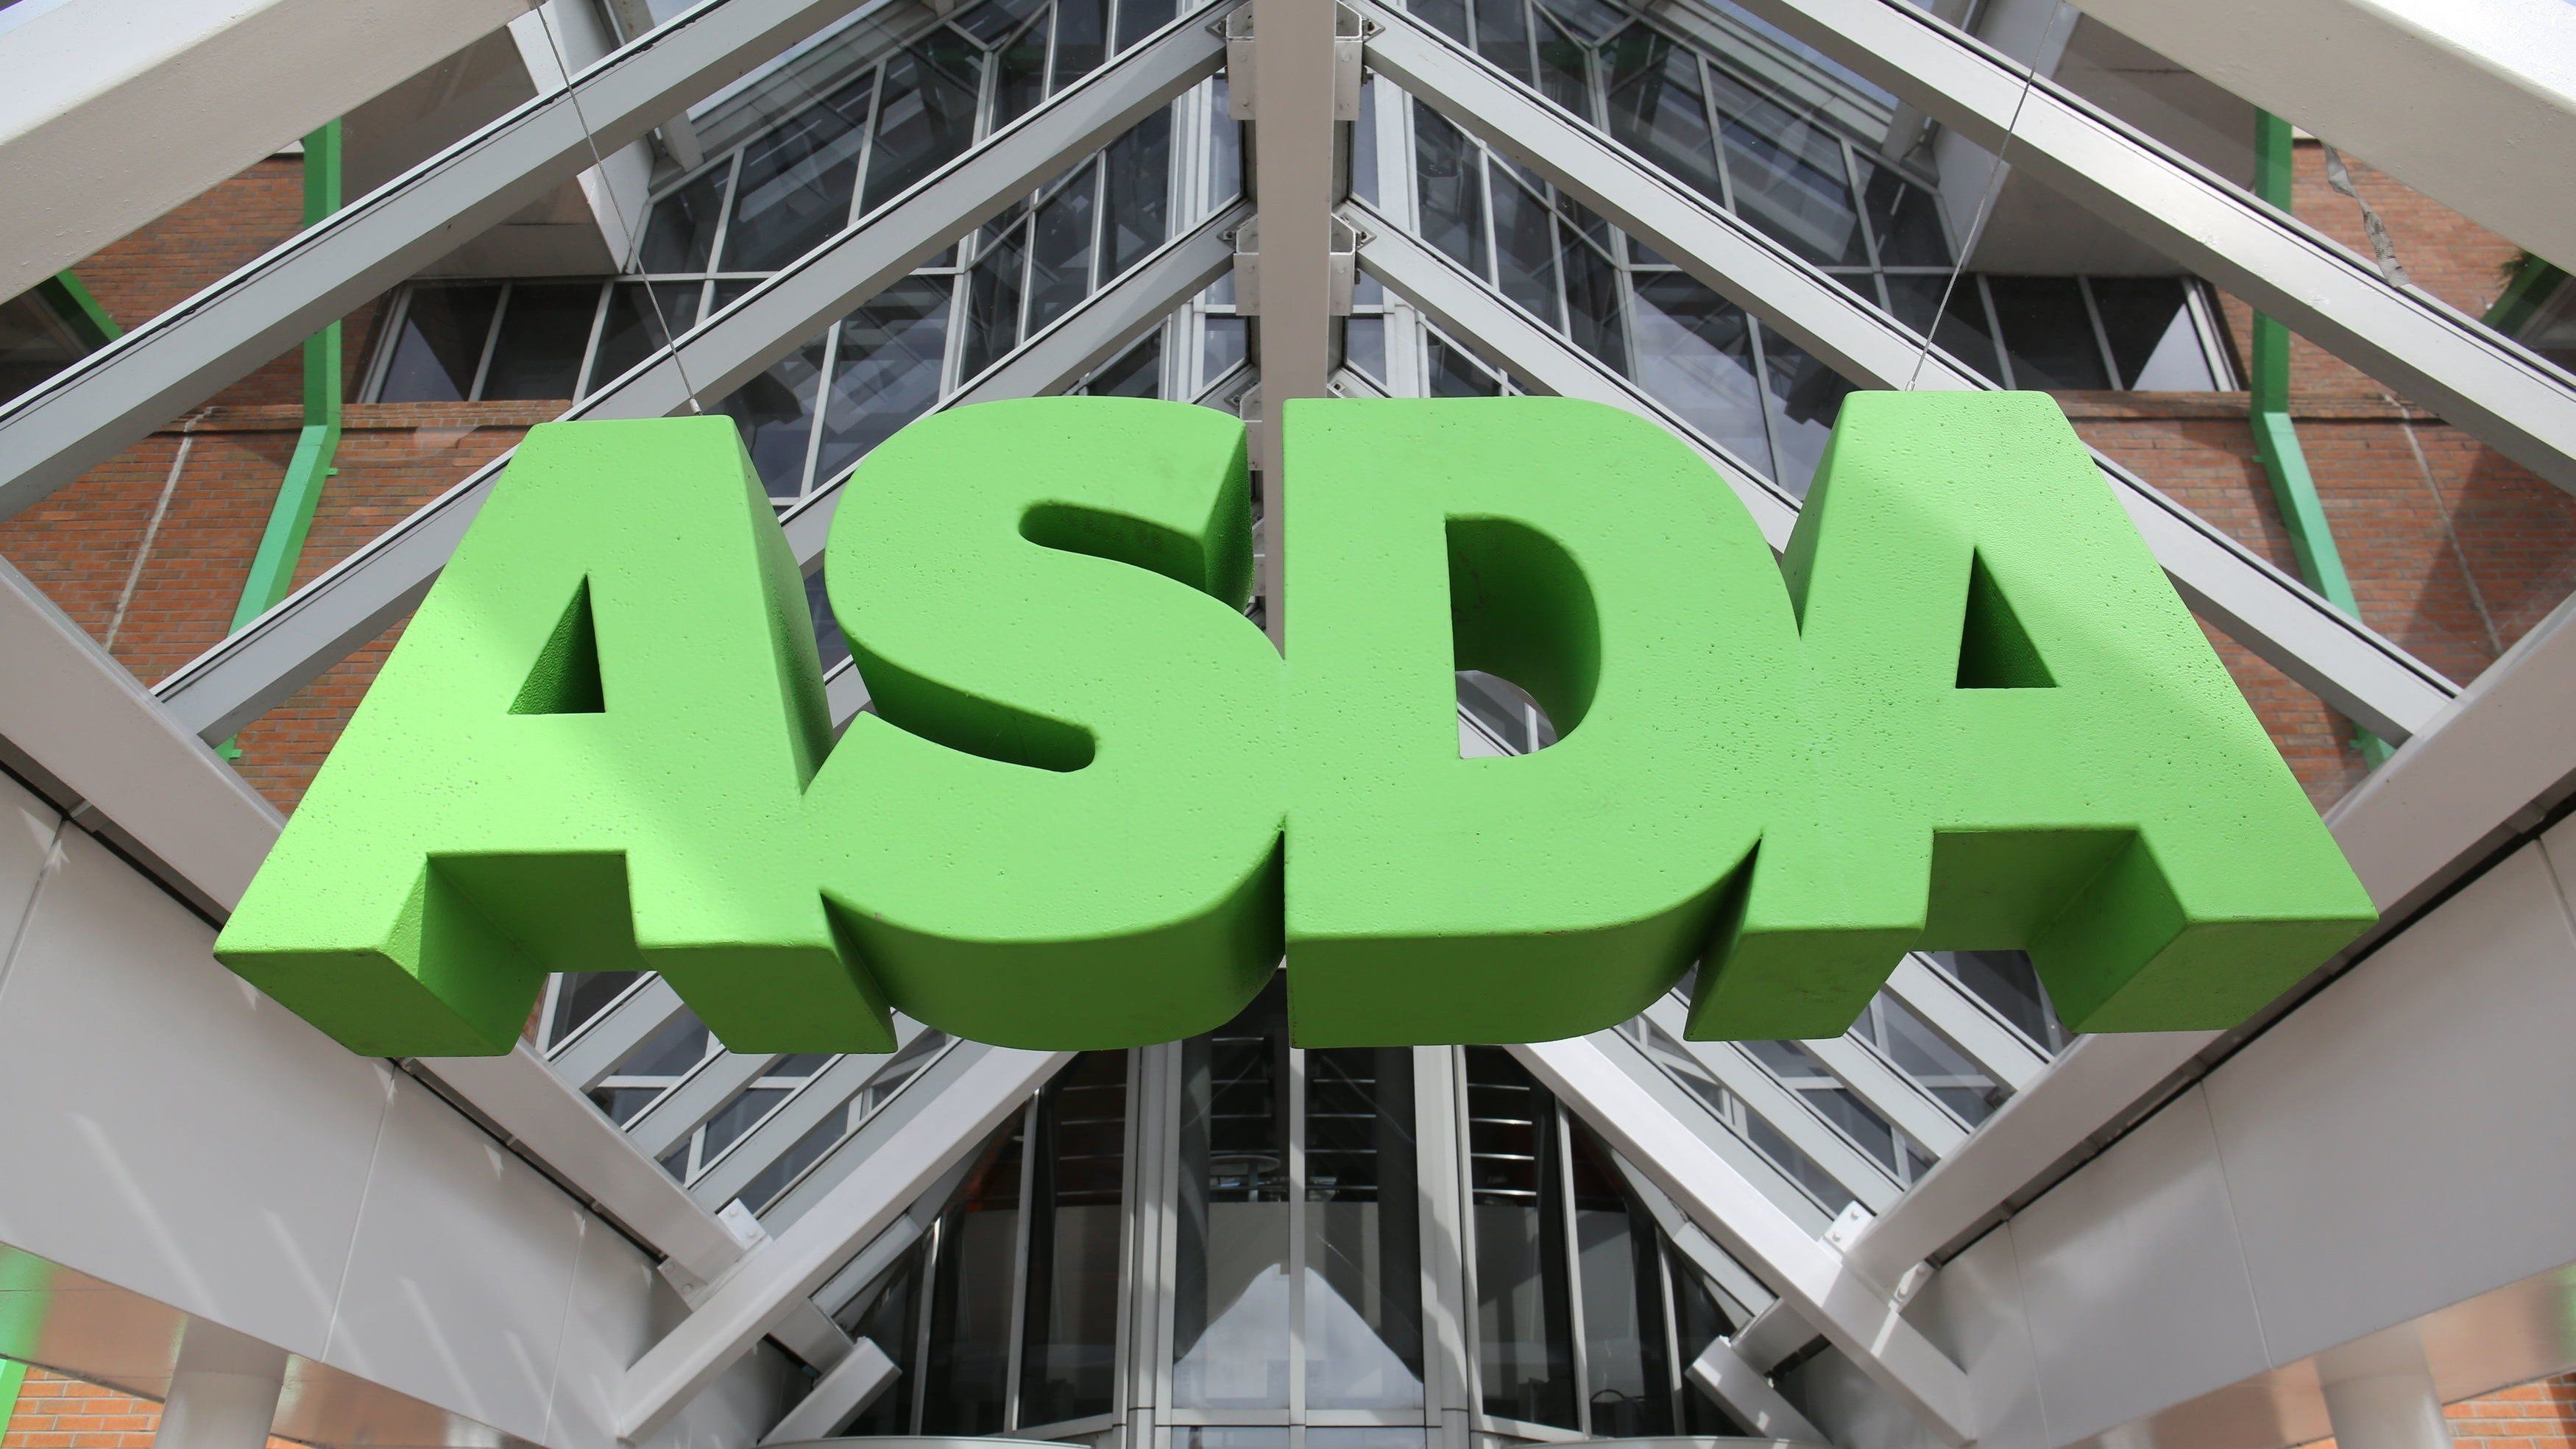 Concern as 2500 jobs 'at risk' at Asda